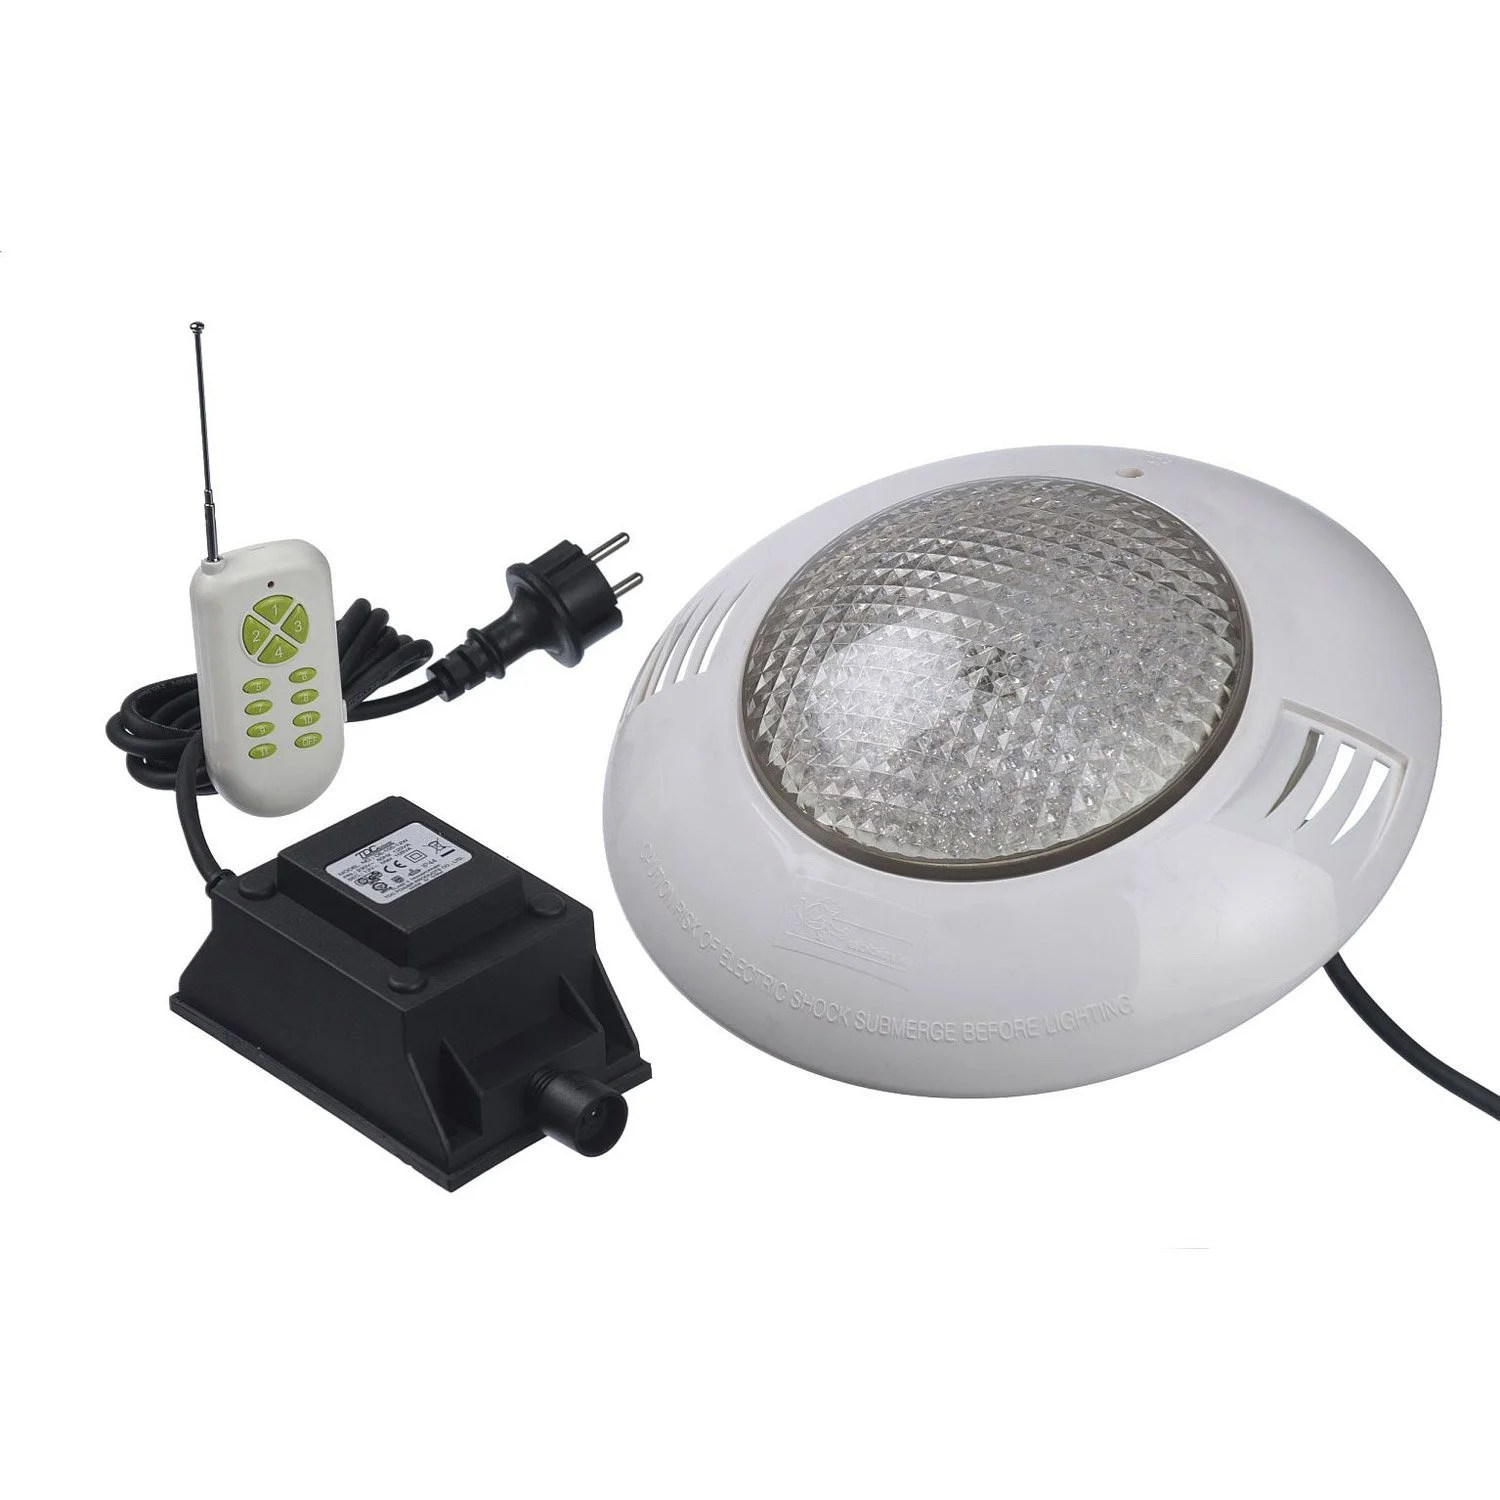 Ampoule Led Multicolore Leroy Merlin Spot Led Pour Piscine Bois Multicolore 35 W Leroy Merlin